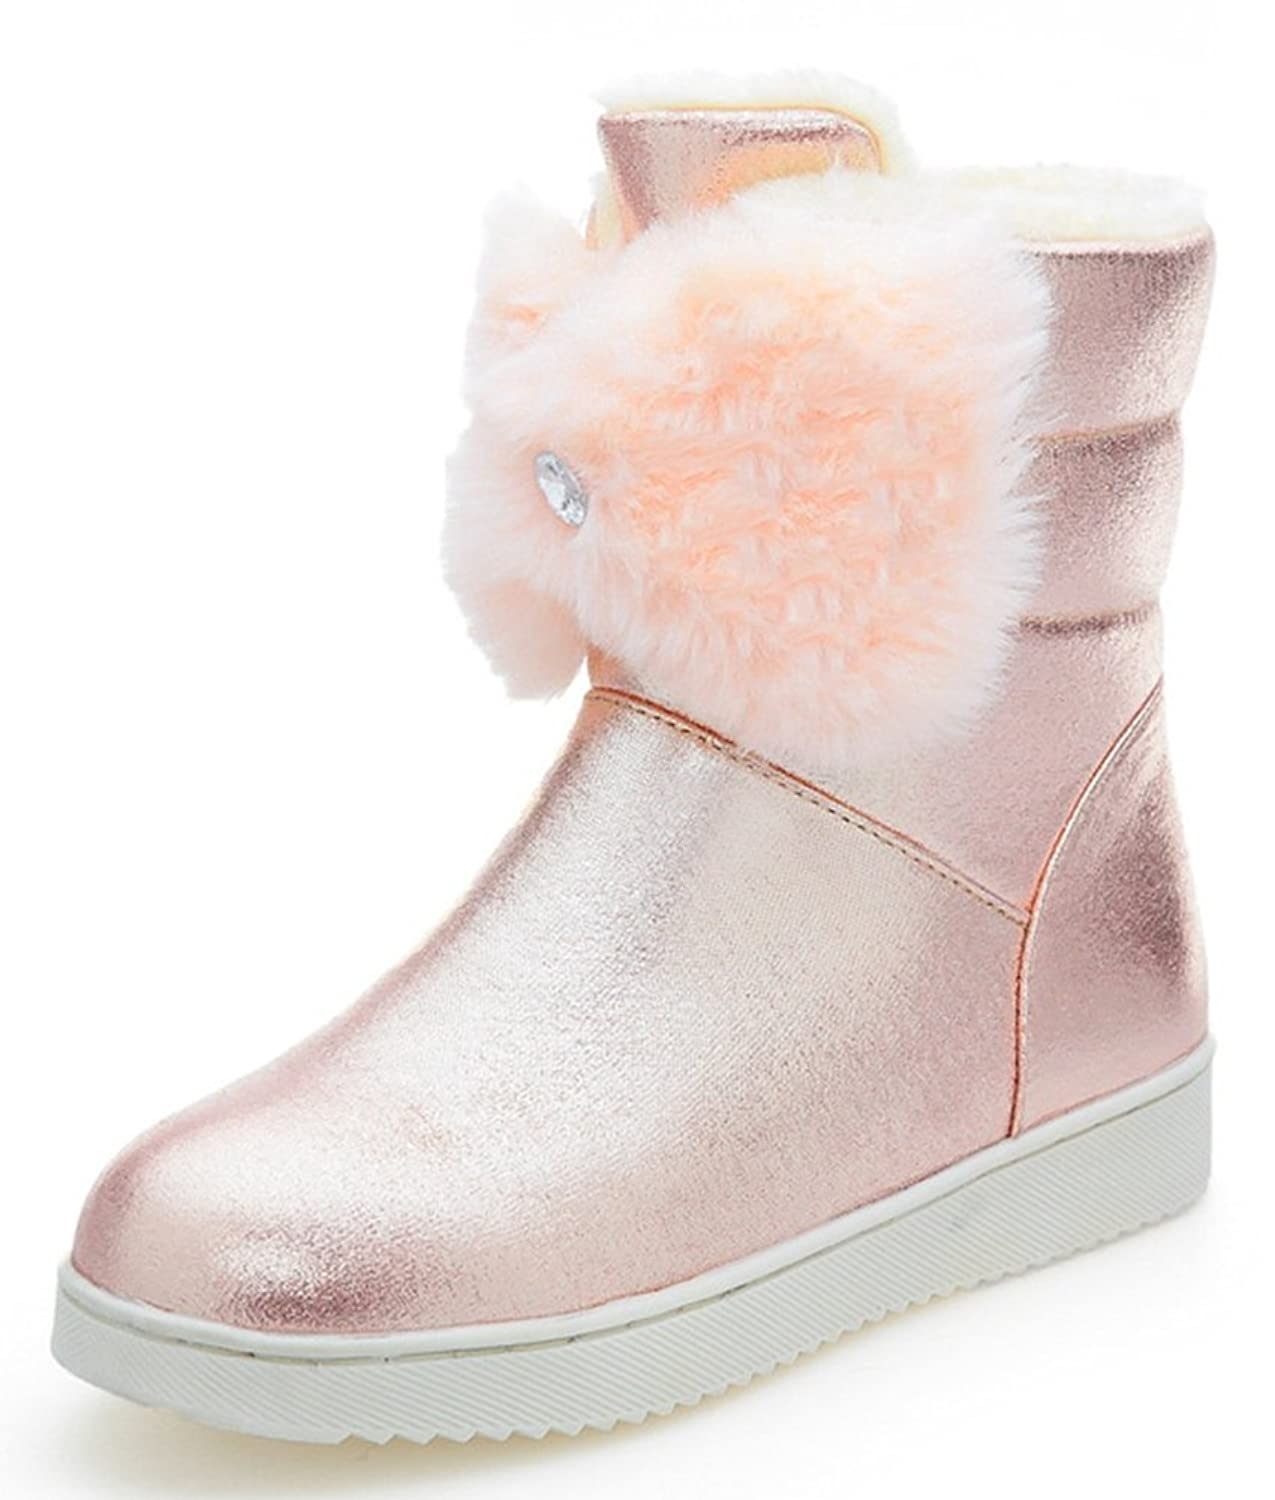 IDIFU Women's Sweet Bow Fully Faux Fur Lined Flat Short Winter Boots Ankle High Snow Booties